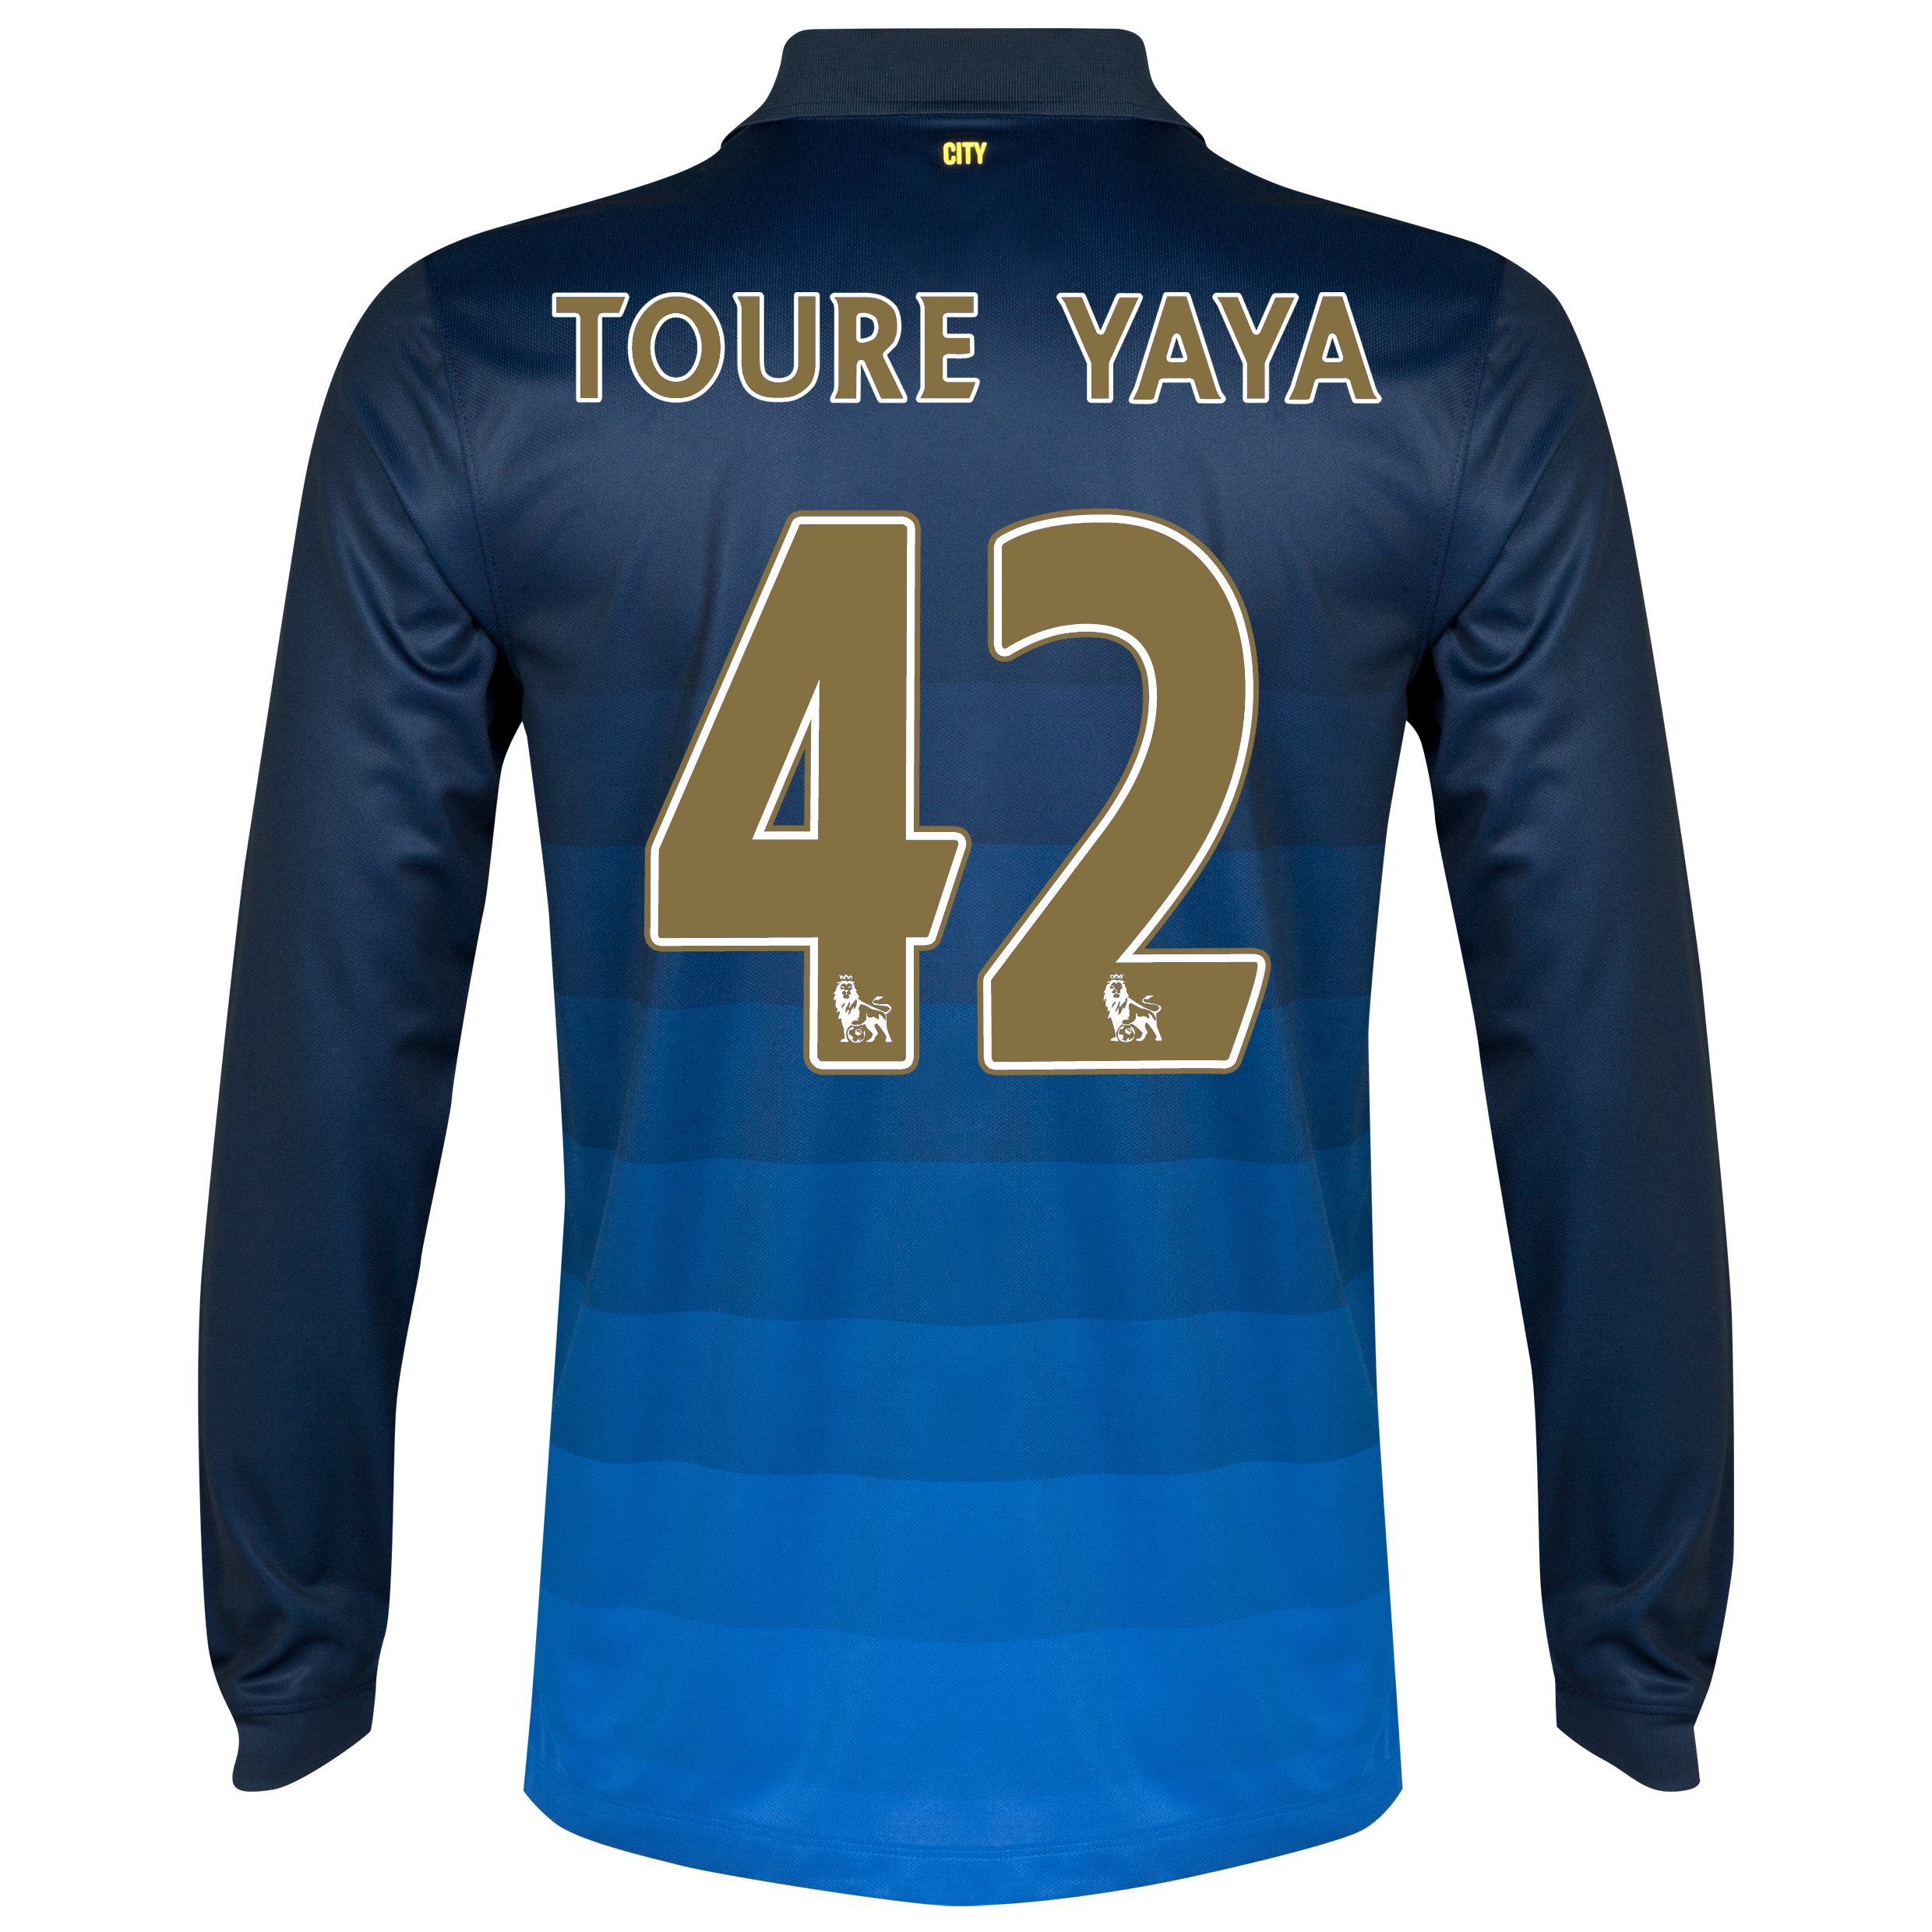 Manchester City Away Shirt 2014/15 - Long Sleeve Dk Blue with Toure Yaya 42 printing